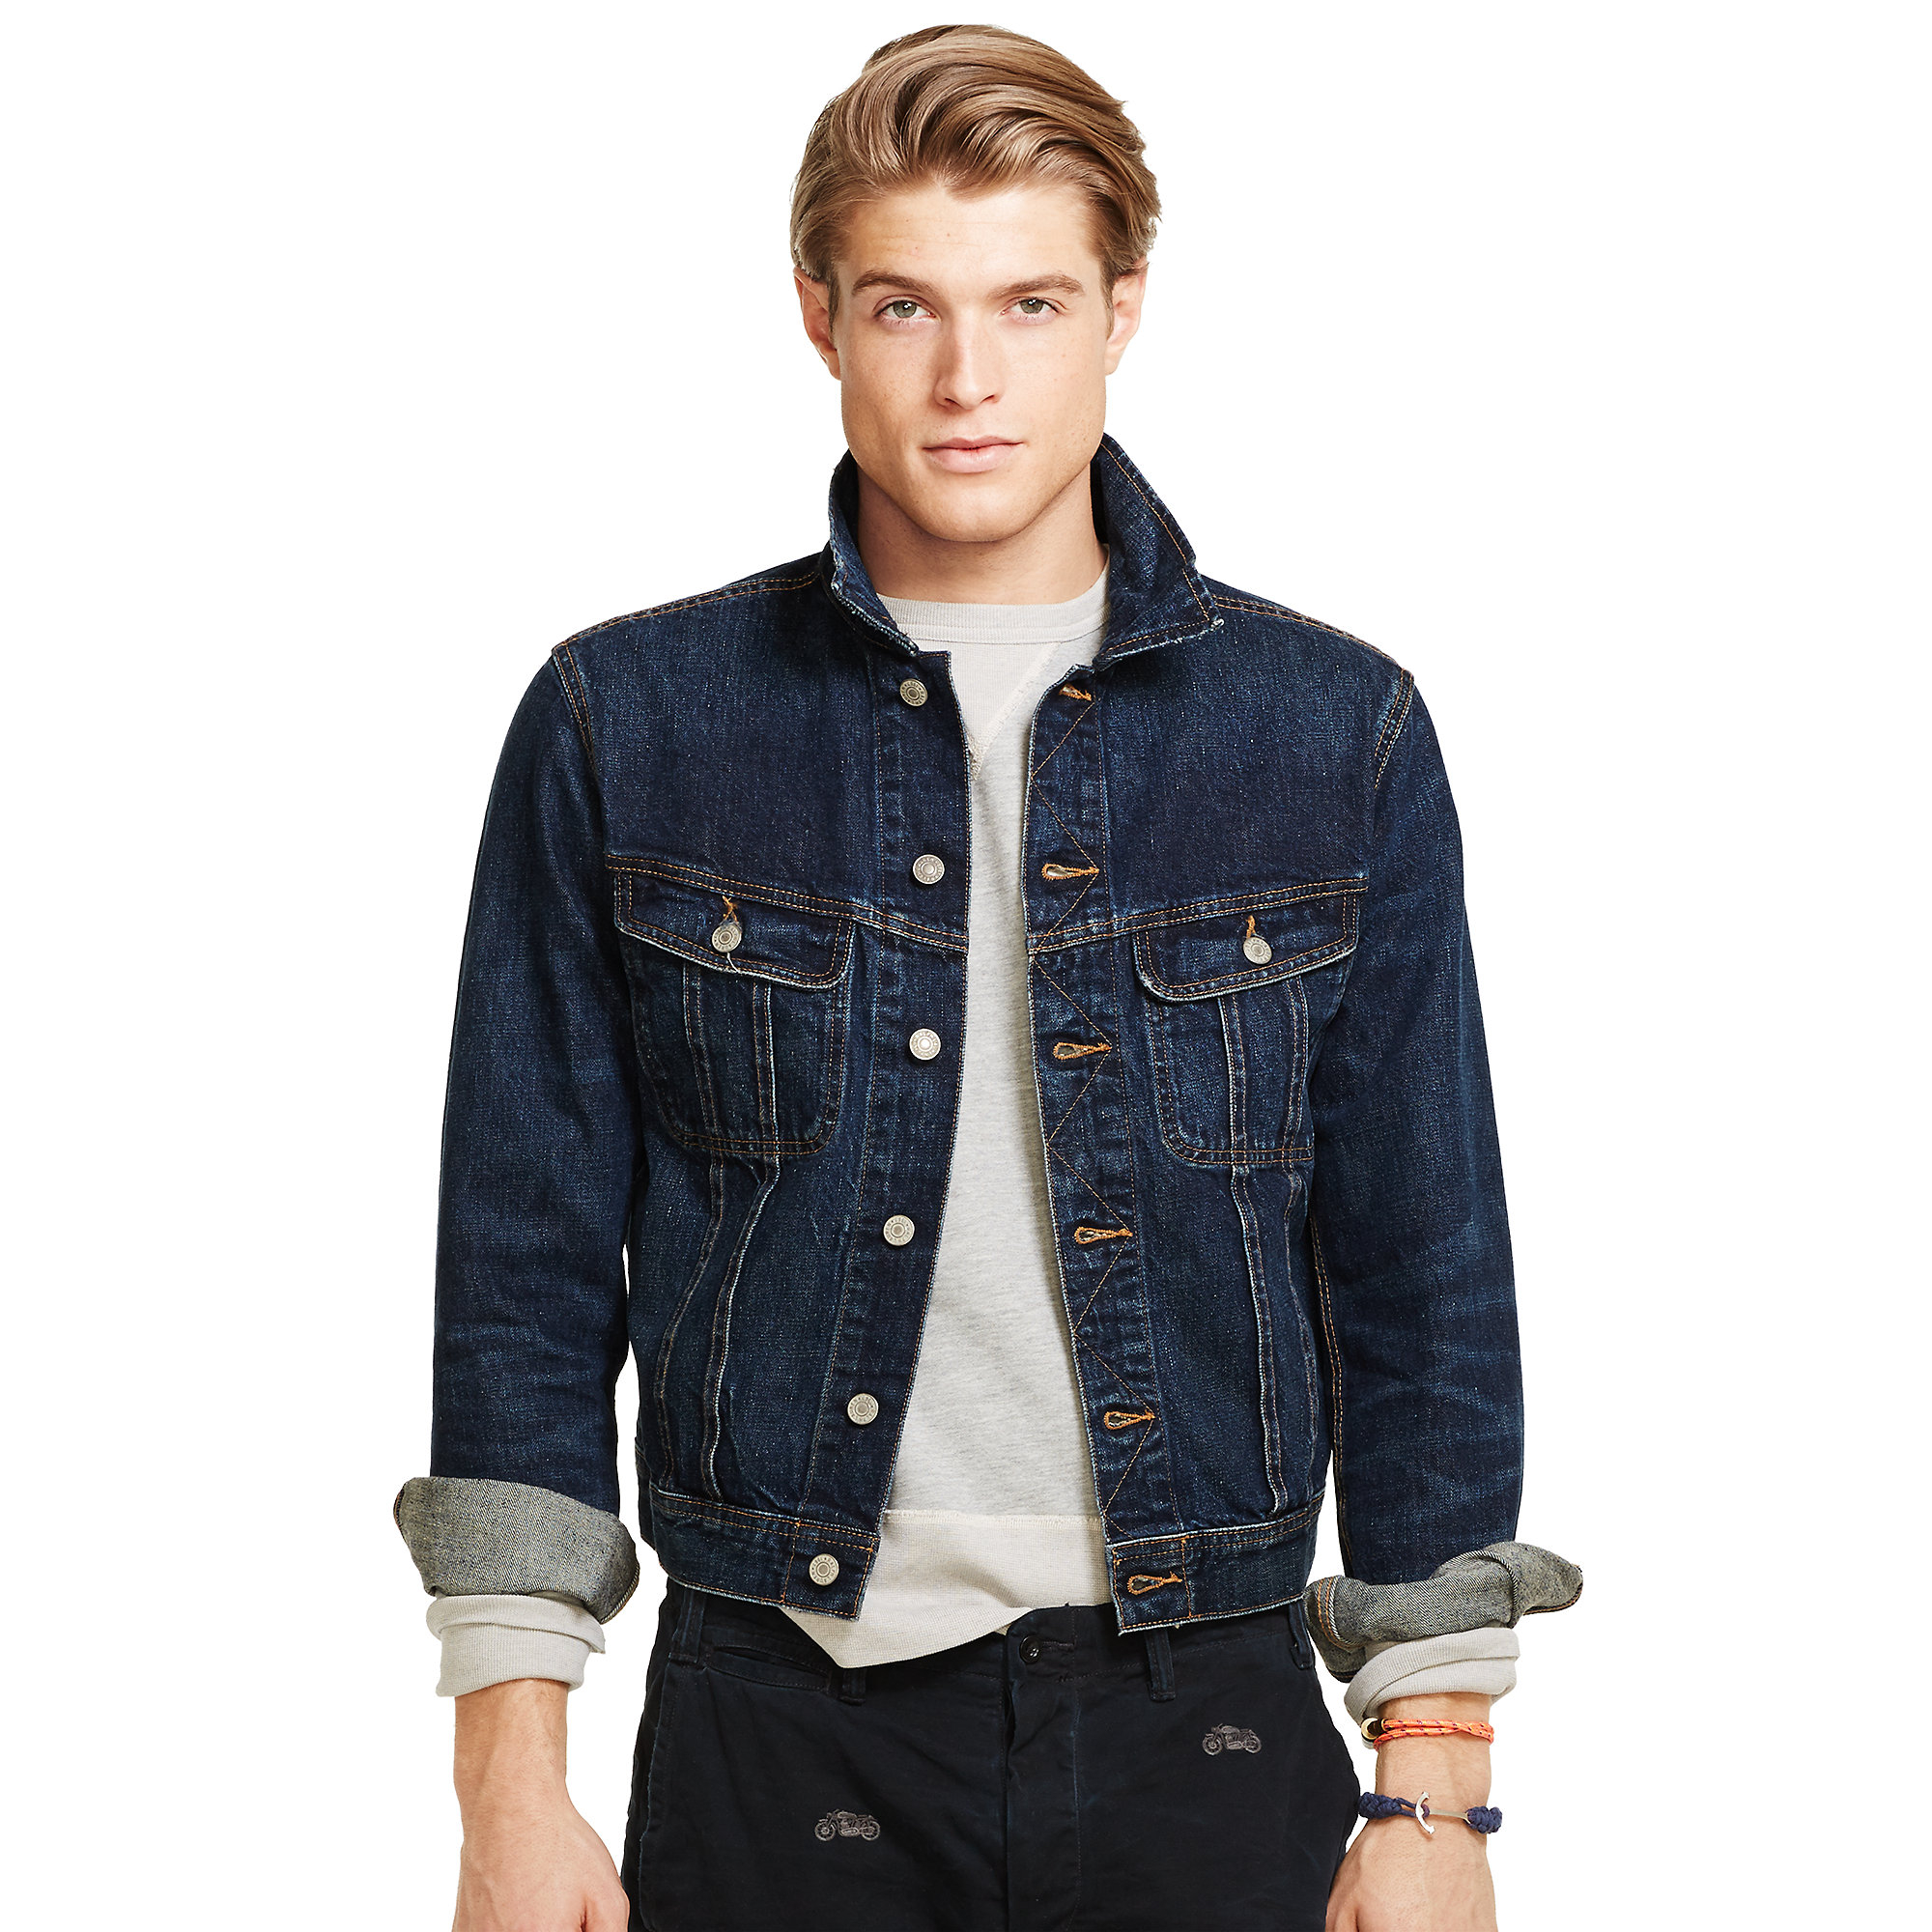 polo ralph lauren denim trucker jacket in blue for men lyst. Black Bedroom Furniture Sets. Home Design Ideas